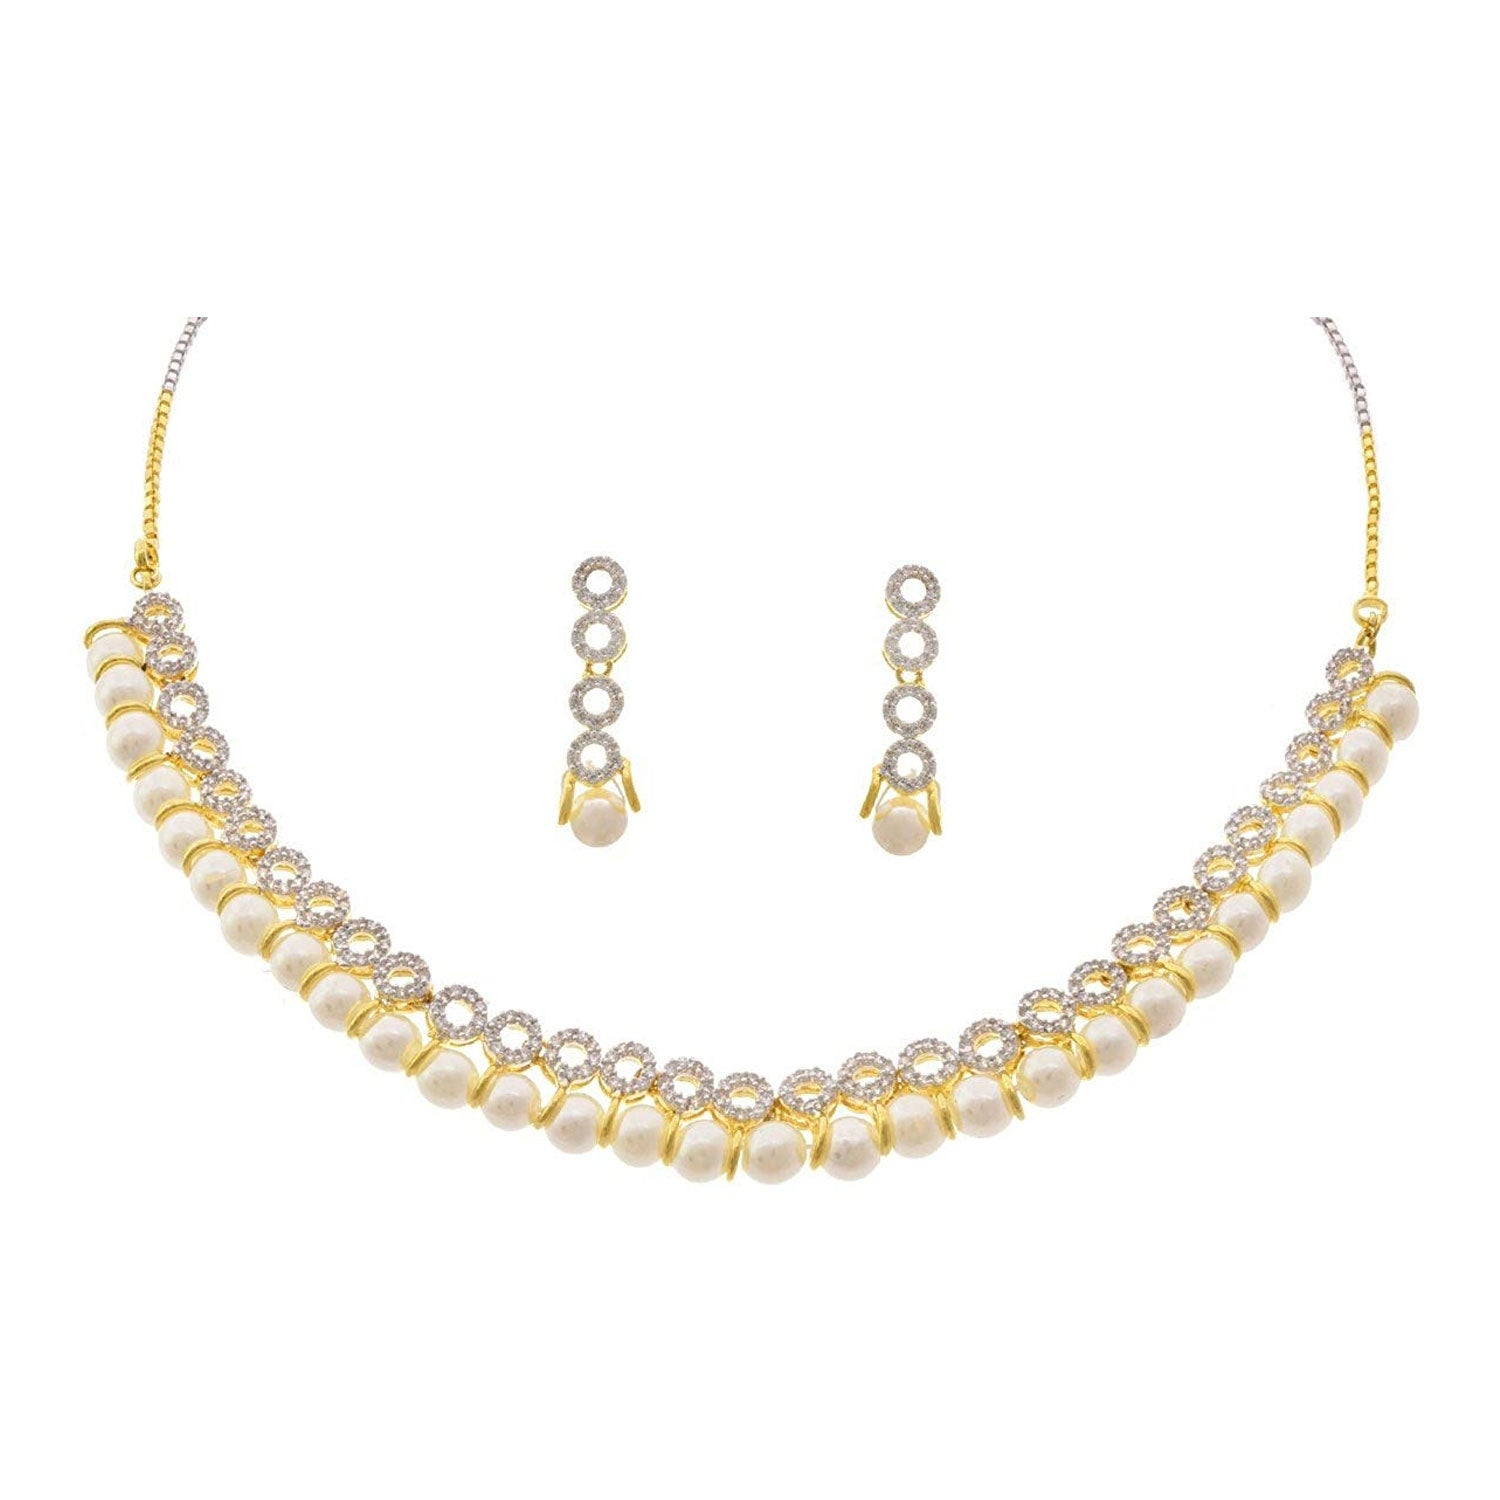 JFL - Captivating White Cz American Diamond Pearl Ethnic Fusion One Gram Gold Plated Designer Necklace Set for Women & Girls